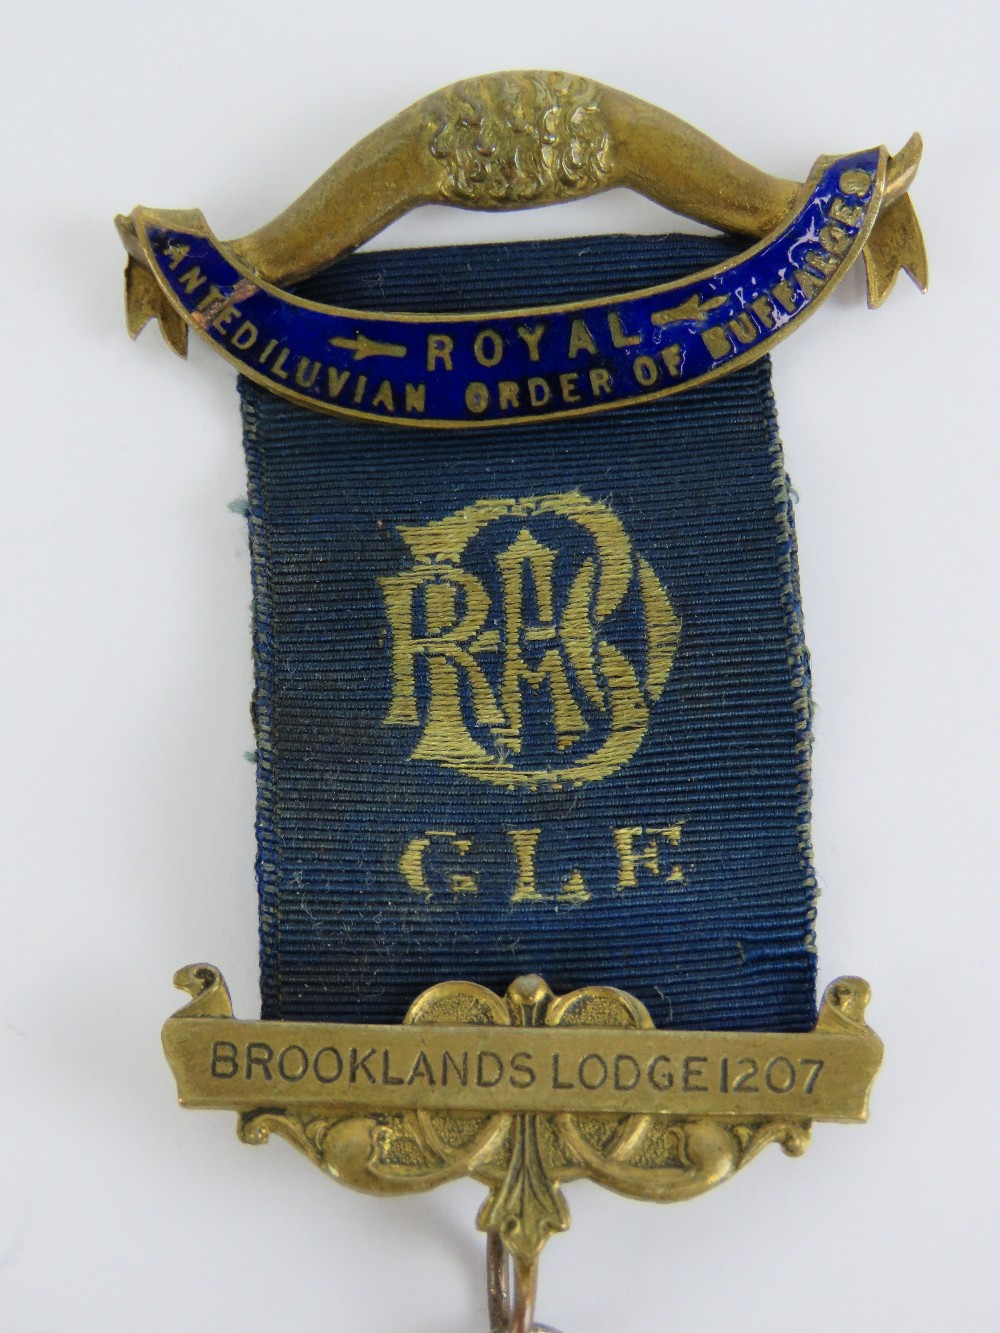 Lot 45 - Royal Antediluvian Order of Buffaloes; Brooklands Lodge No 1207 medal having HM silver jewel below,